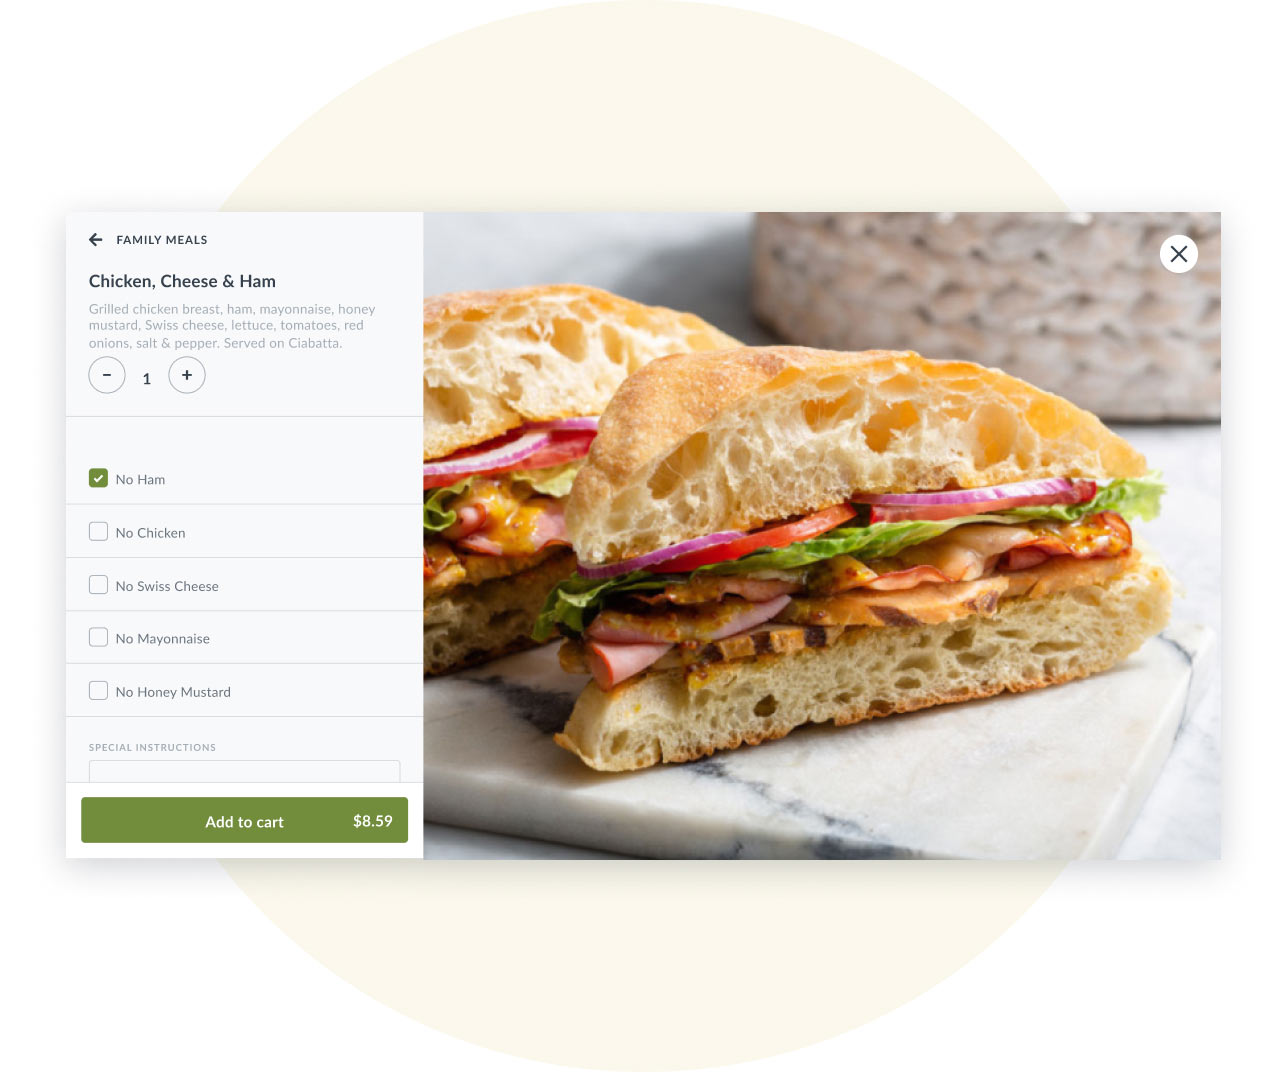 UI of a pop up modal in the Thanx desktop ordering experience